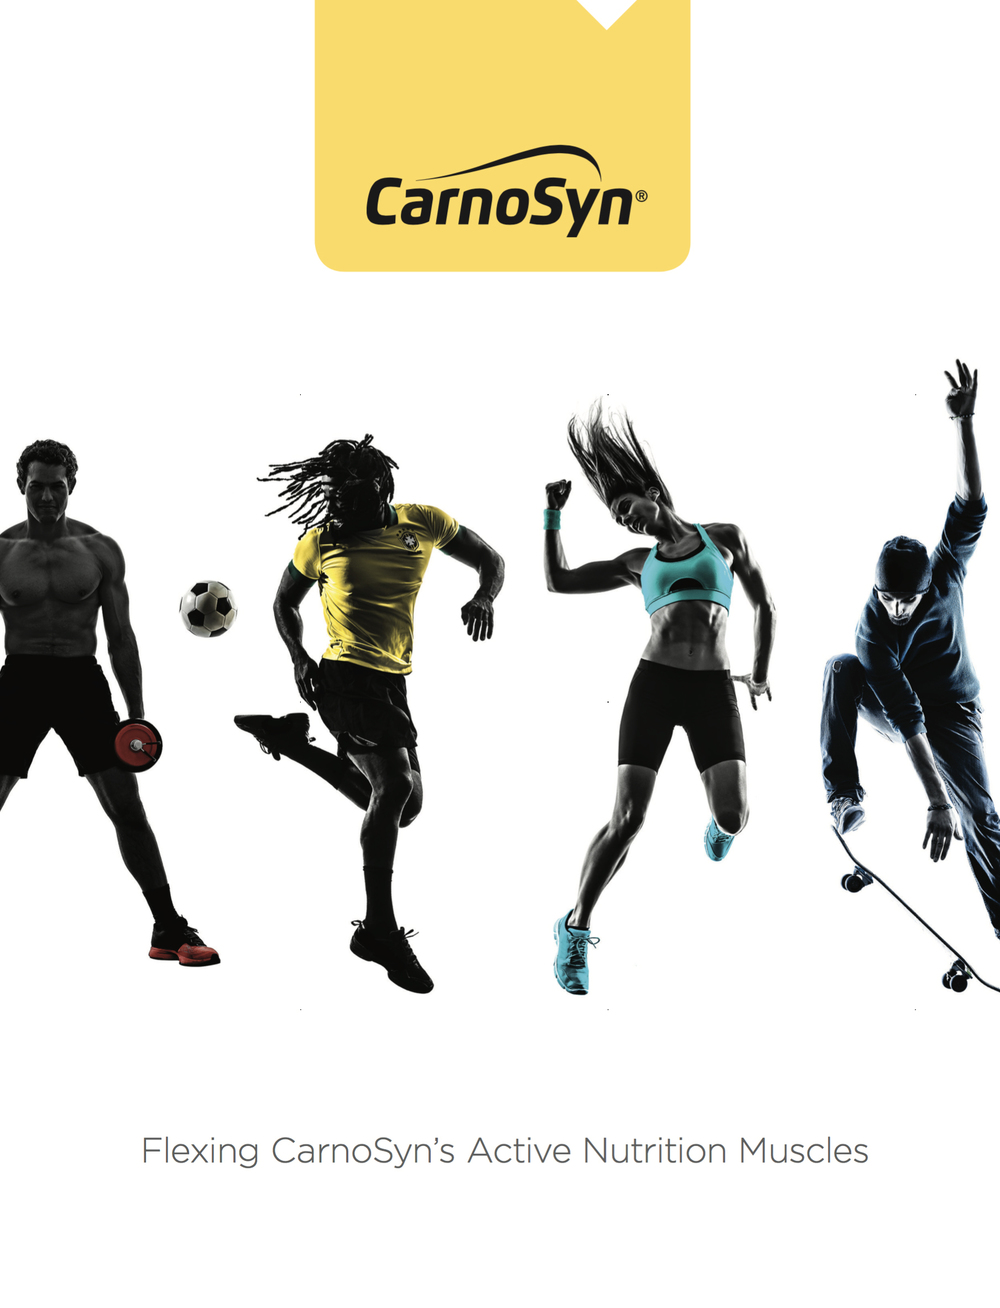 CarnoSyn   CarnoSyn revised their brand positioning to encompass the emerging Active Nutrition category. Sharon Benedict worked with Jeff Hilton and other BrandHive staff to develop a new Brand Communication Platform (BCP) to support this shift. Sharon wrote the Brand Positioning, Brand Promise, and Brand Story segments of the plan, in addition to SEO-optimized key messages for B2B and B2C audiences.